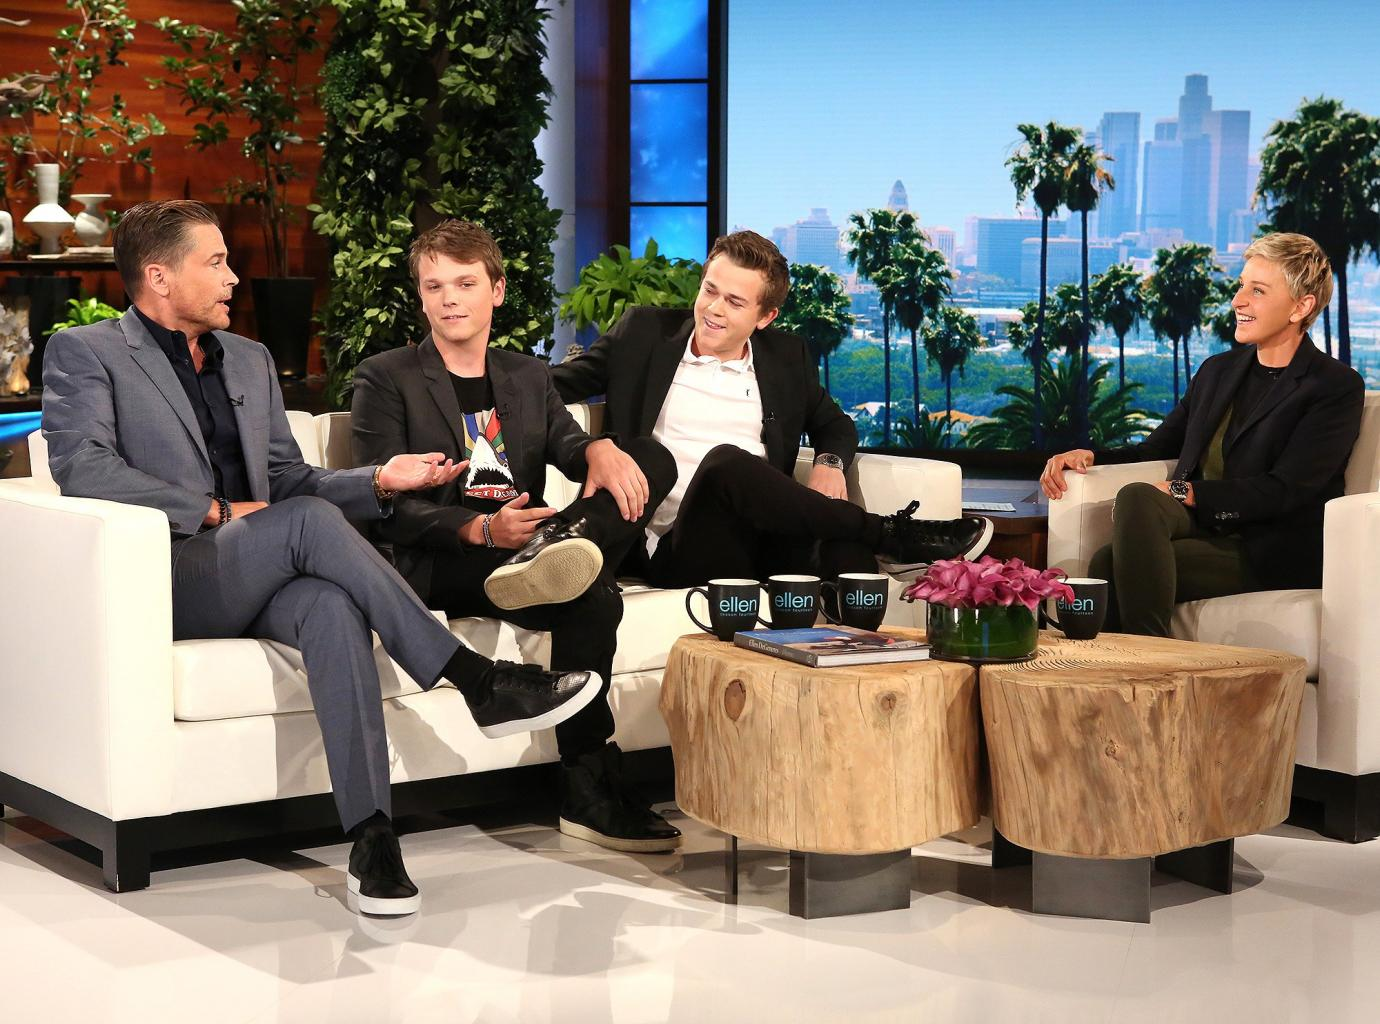 Rob Lowe       's Sons Roasts Their        Manchild      '  Father:        He Likes Selfies a Little Too Much